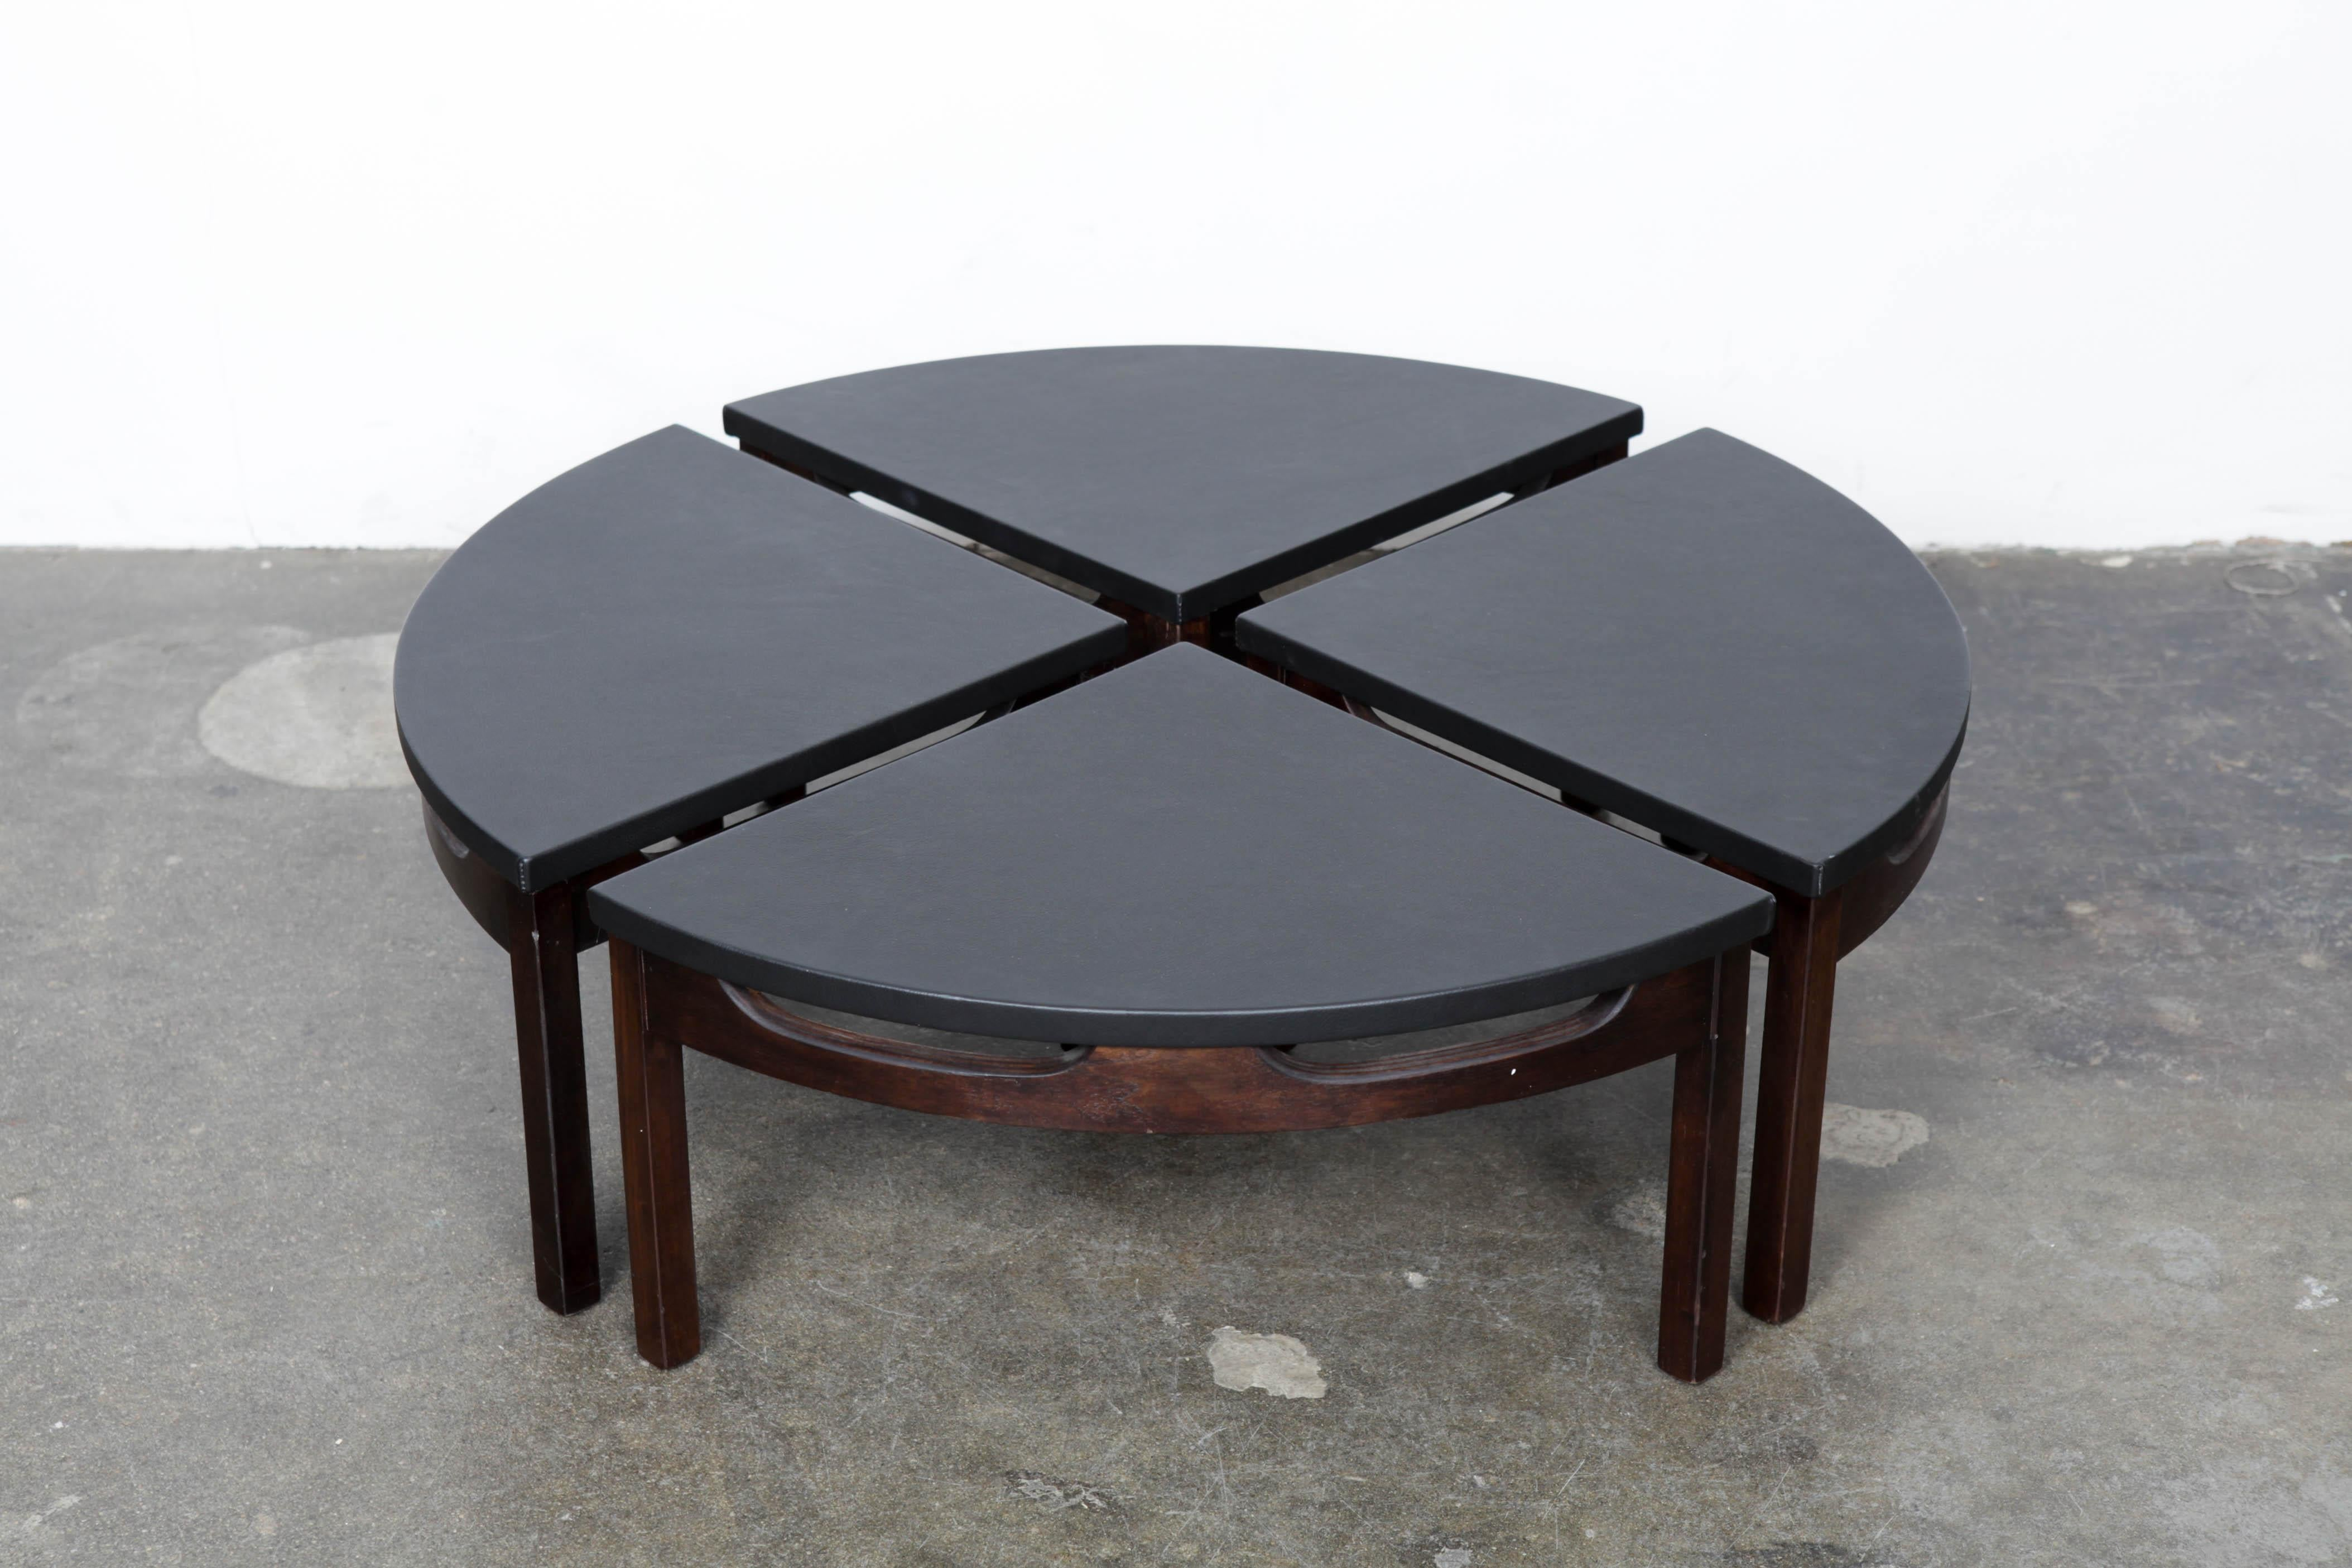 Unique Walnut And Leather Top Round Coffee Table, 1960s, That Separates  Into 4 Pie